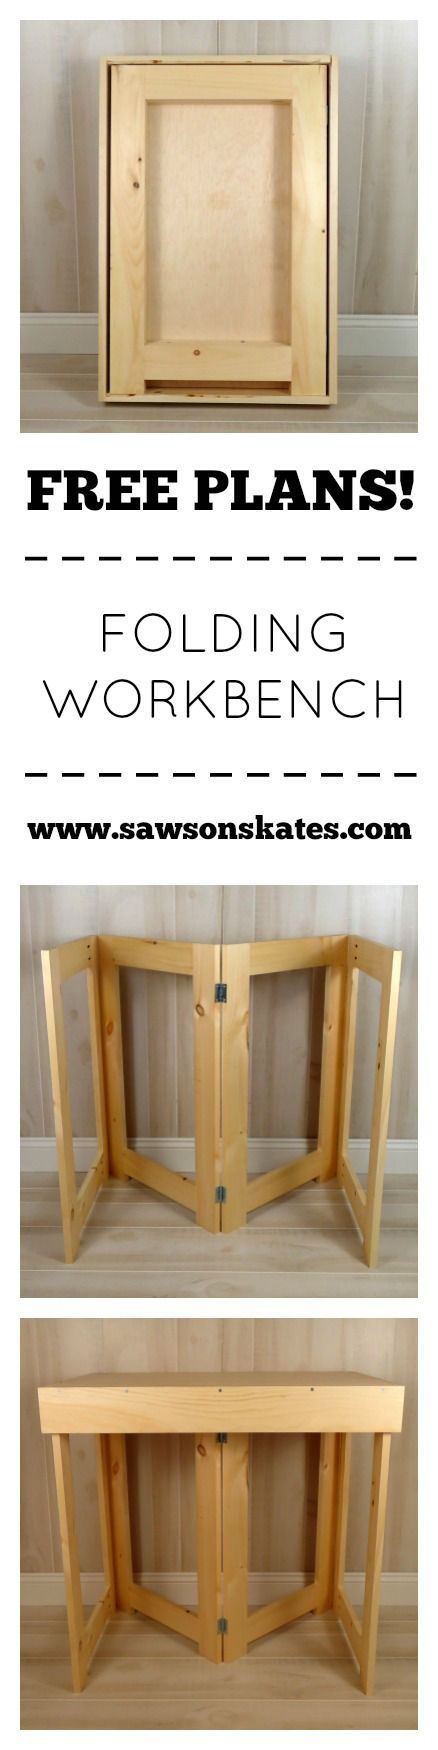 Searching for folding workbench ideas? Check out these free DIY plans for a portable, go anywhere workbench. Great for garages or workshops and sturdy enough to support many tools. This project is perfect for those without a dedicated work space, as an extra assembly table or to hit the road for a DIY project.